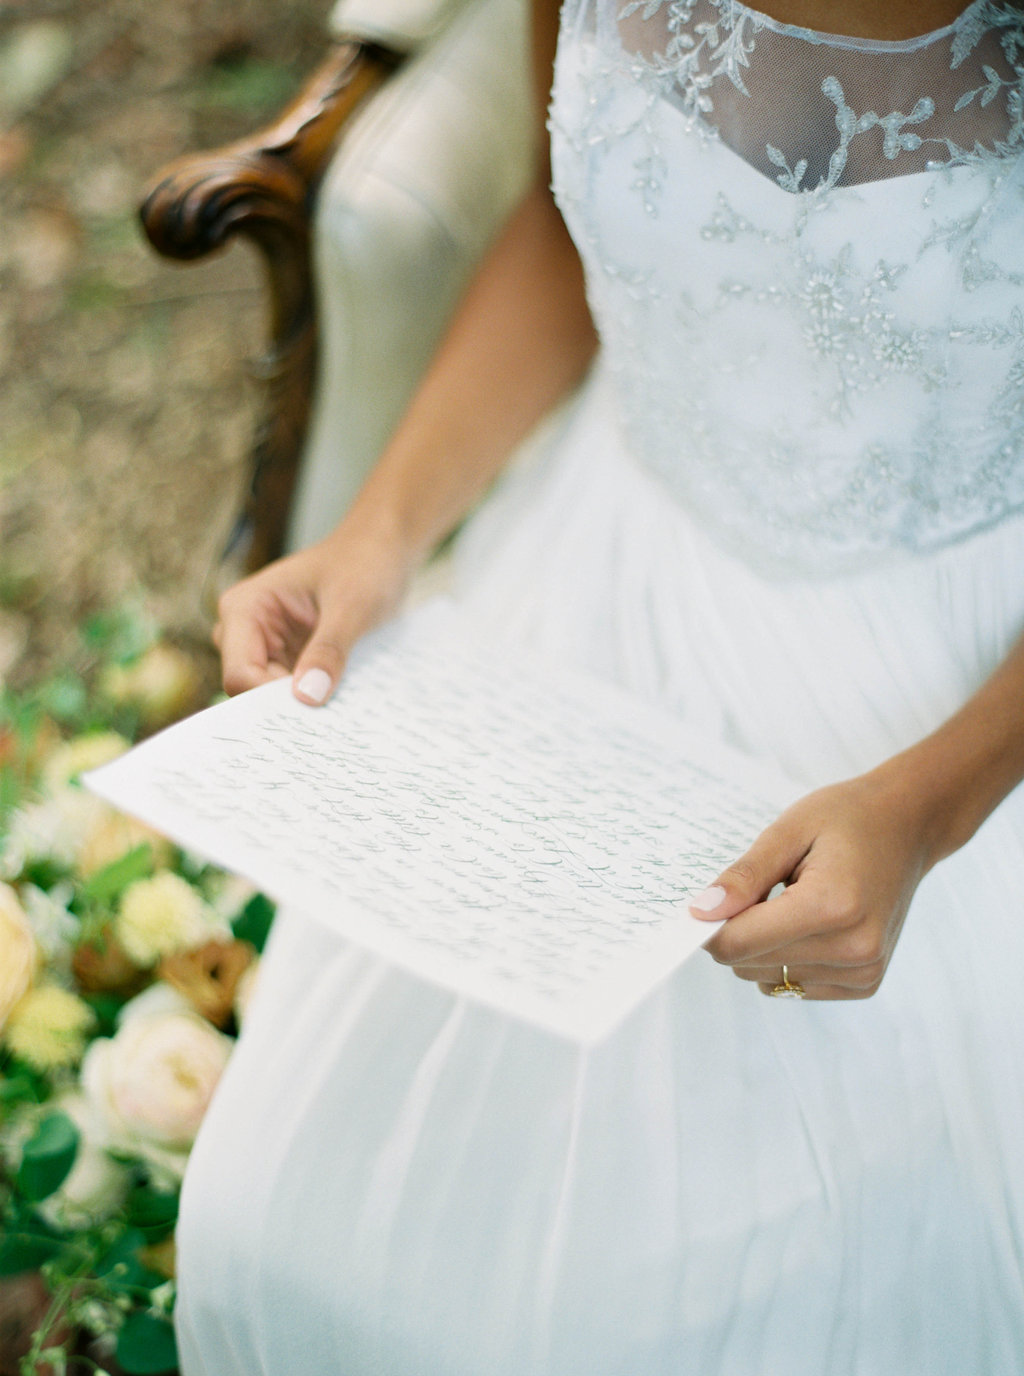 Wedding Wise, Seattle Wedding Planner | 2017 Pantone Color of the Year, Greenery | Sarah Carpenter Photography | Bride reading vows